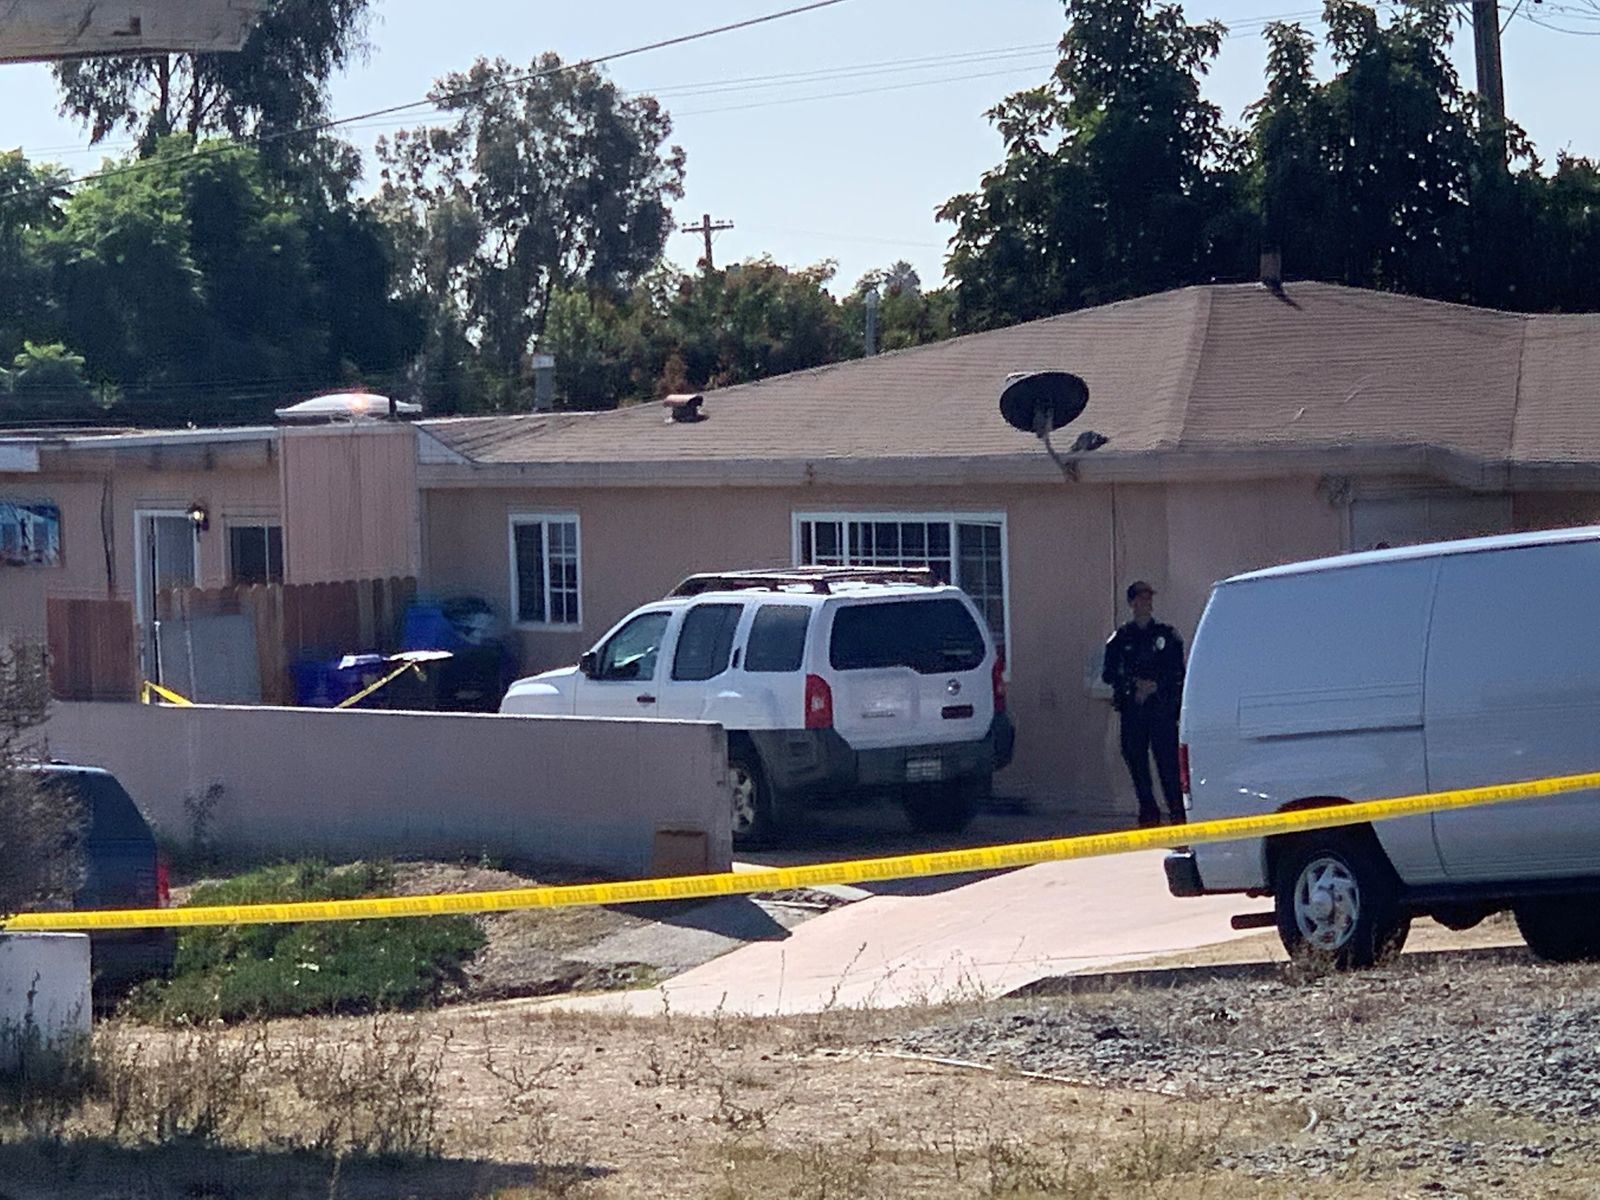 San Diego police investigate a shooting that killed five members of a family and wounded one more in Paradise Hills on Saturday, Nov. 16, 2019 in San Diego, Calif. Police said two adults and three children were shot to death and a fourth child was hospitalized with injuries in an apparent murder-suicide in San Diego. (Hayne Palmour/The San Diego Union-Tribune via AP)